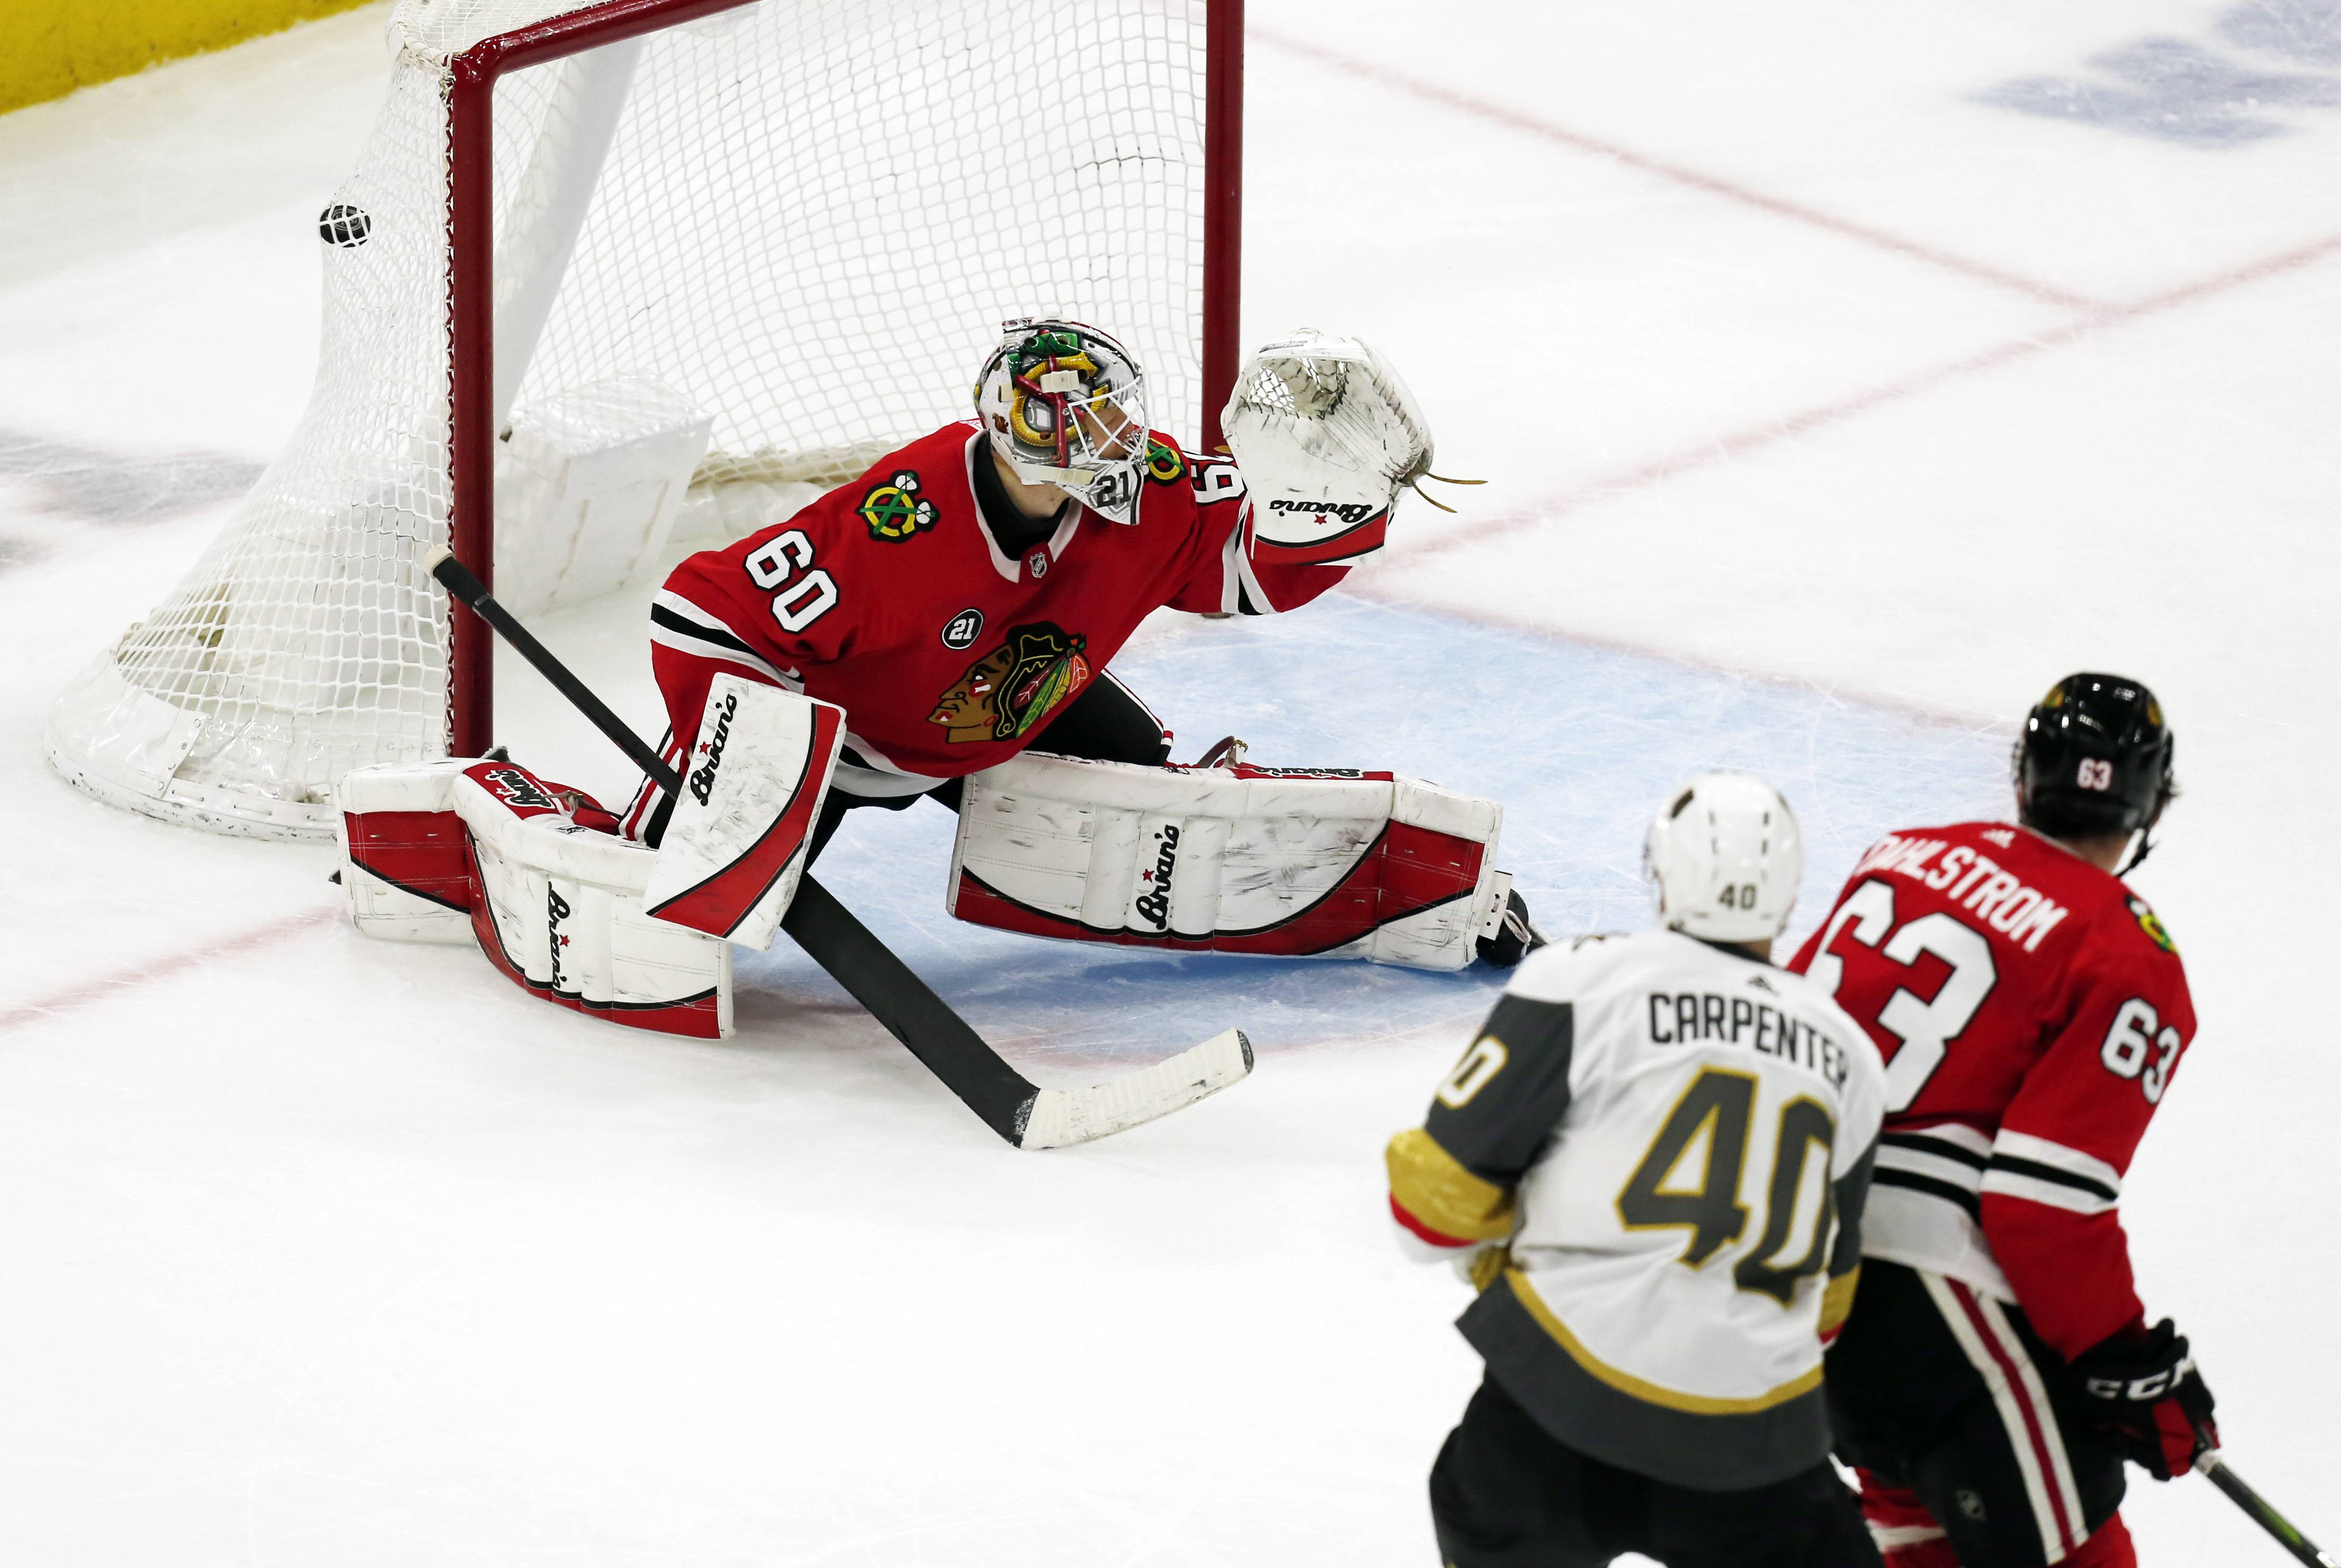 Vegas Golden Knights center Ryan Carpenter (40) scores a goal past Chicago Blackhawks goaltender Collin Delia (60) during the second period of an NHL hockey game Saturday, Jan. 12, 2019, in Chicago.